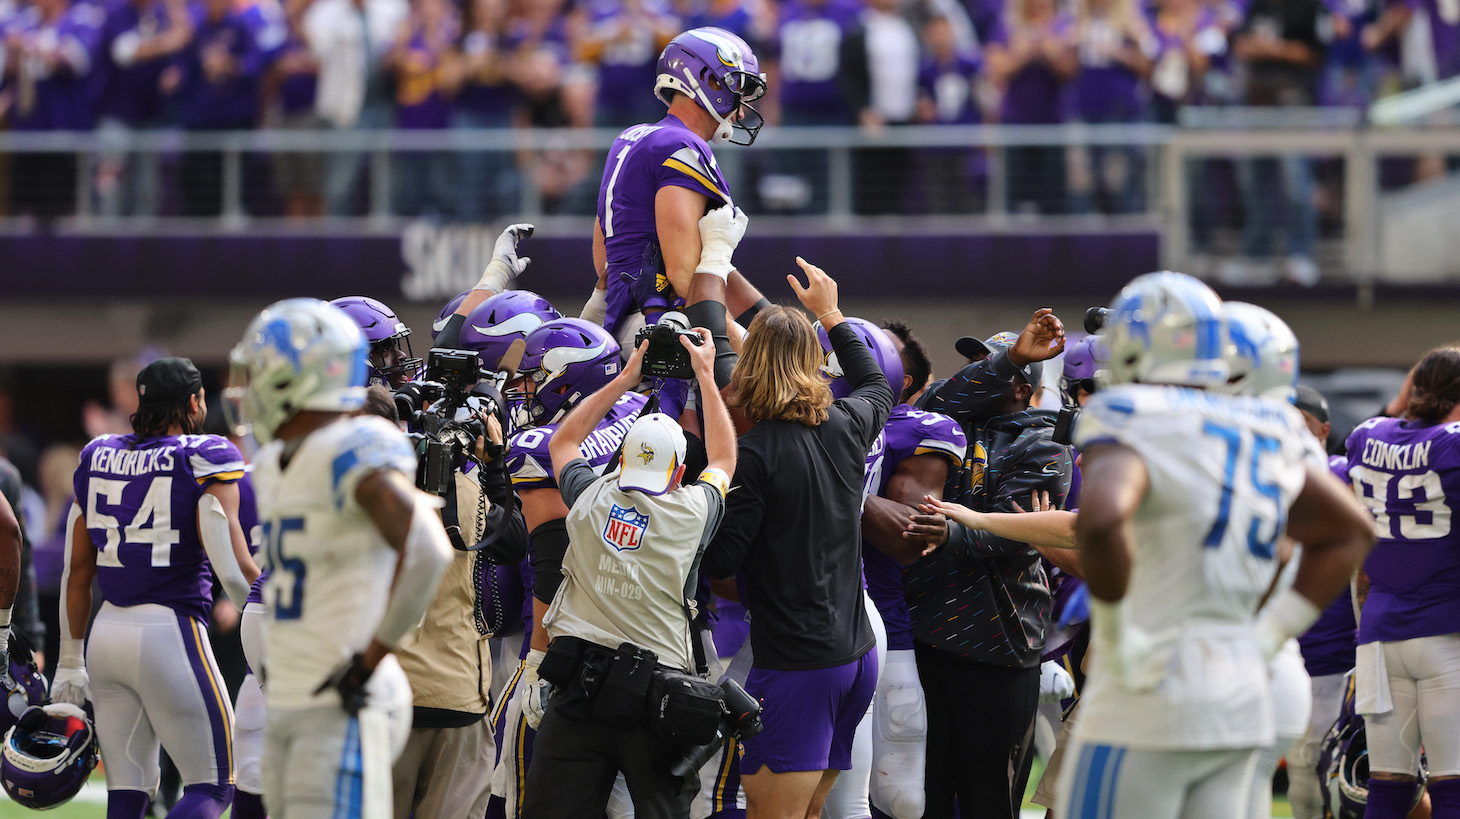 MINNEAPOLIS, MINNESOTA - OCTOBER 10: Greg Joseph #1 of the Minnesota Vikings is carried off the field by teammates after kicking the game winning field goal against the Detroit Lions at U.S. Bank Stadium on October 10, 2021 in Minneapolis, Minnesota. (Photo by Adam Bettcher/Getty Images)